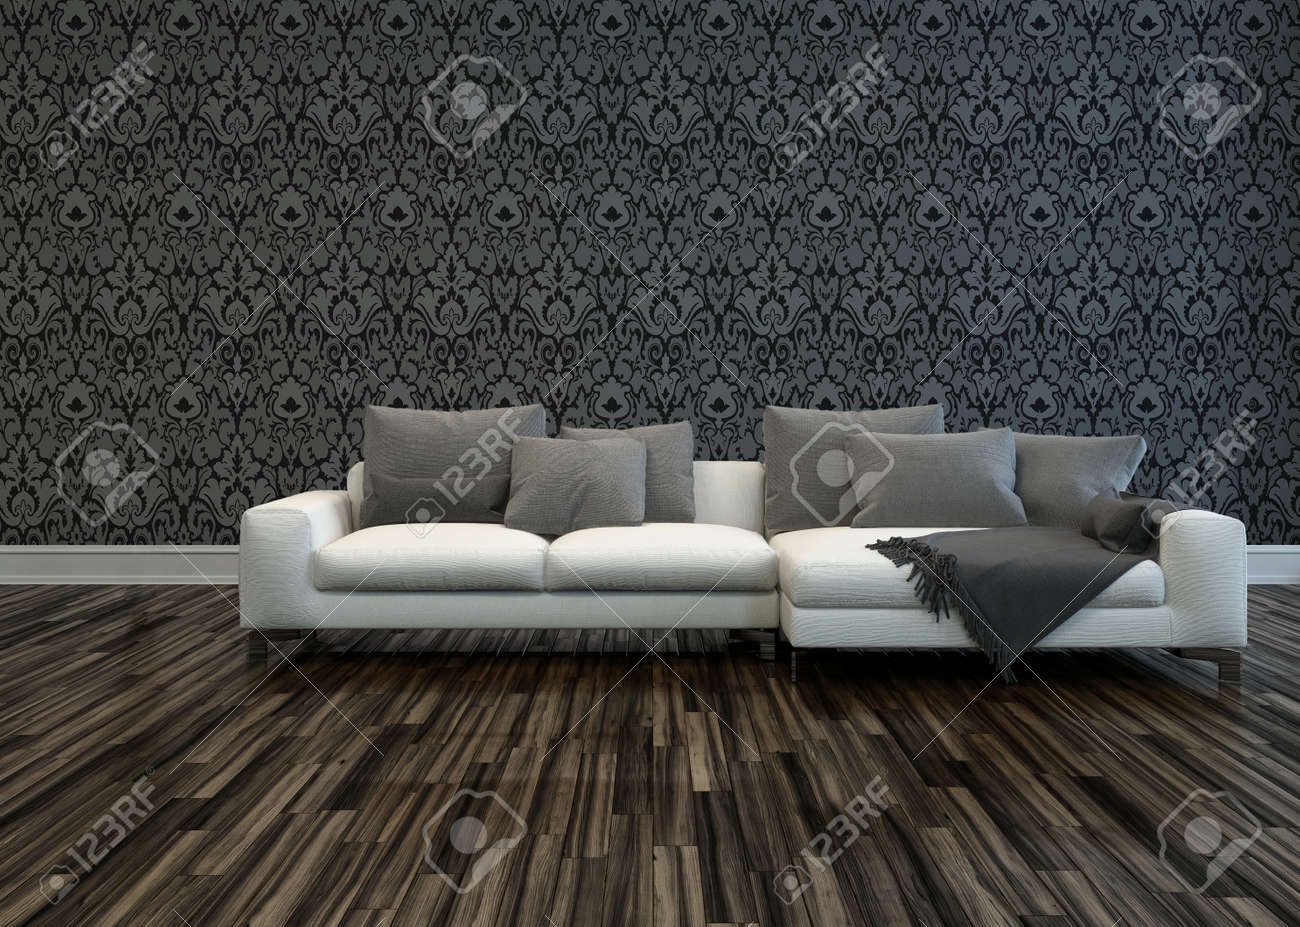 White Sofa With Grey Cushions In Room With Grey Patterned Wallpaper